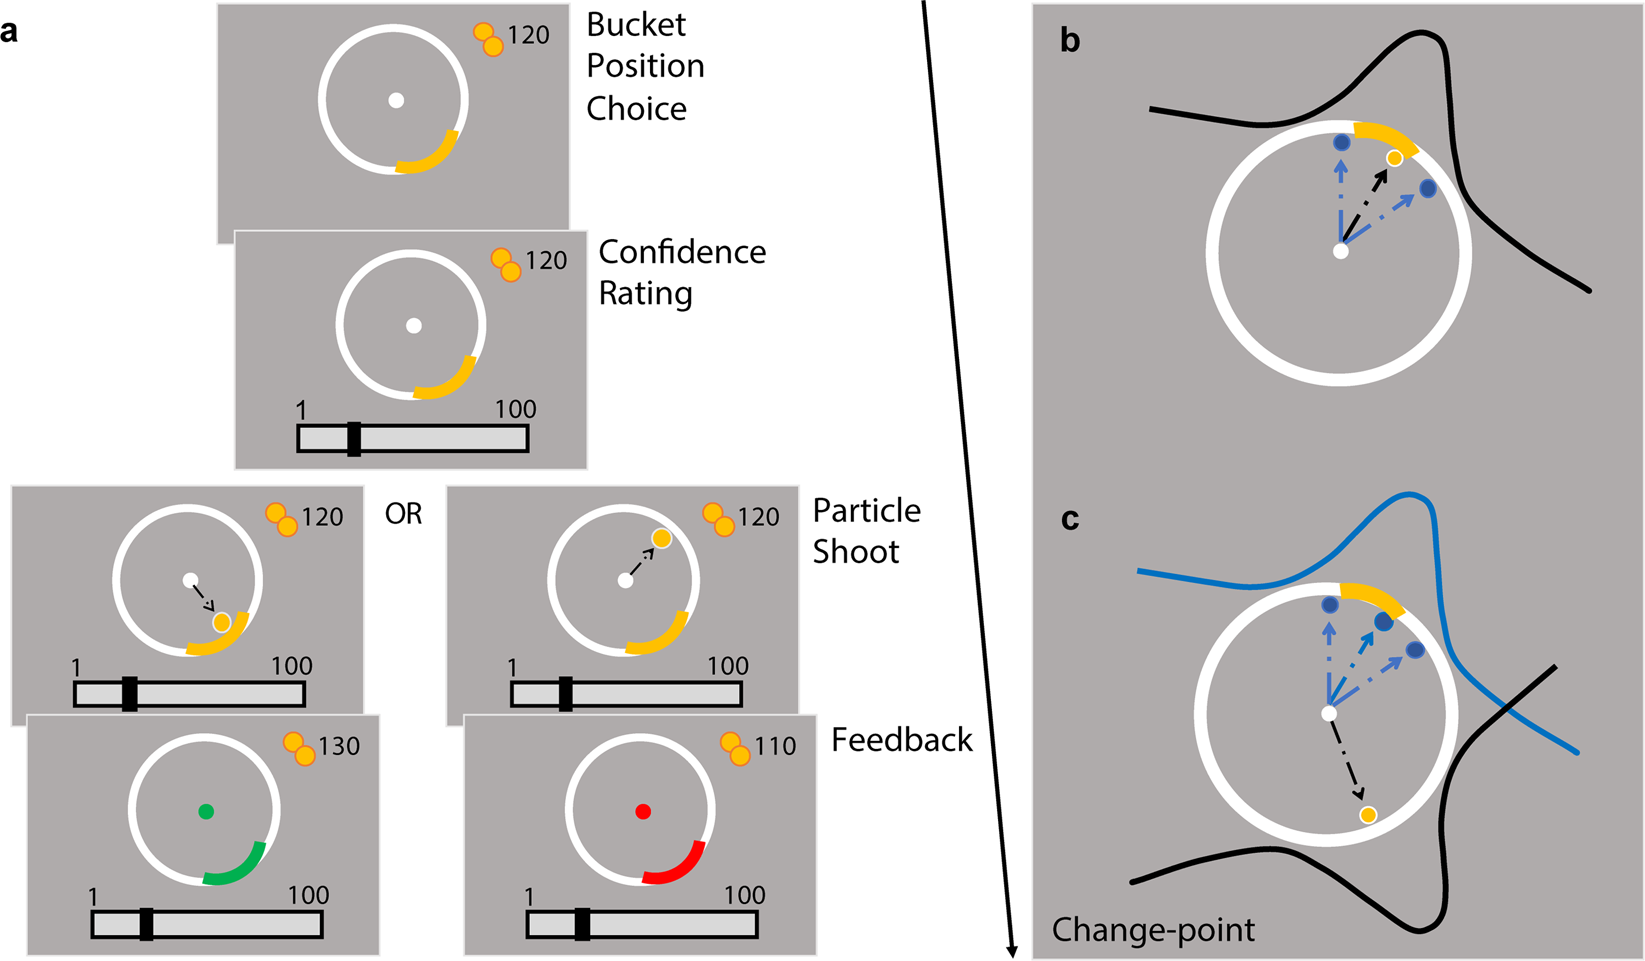 Transdiagnostic Phenotyping Reveals A Host Of Metacognitive